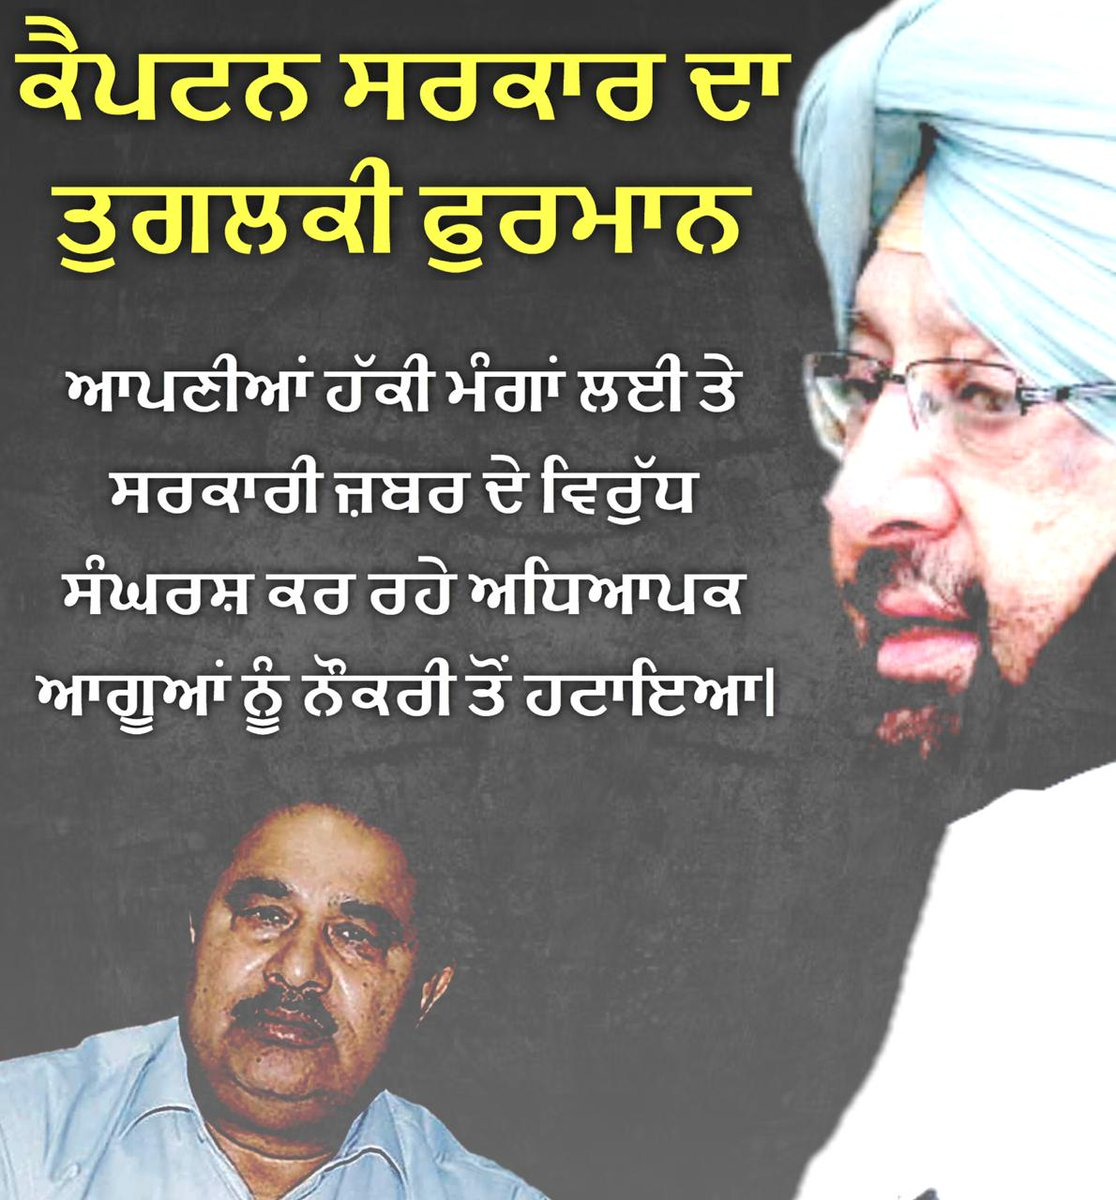 The Congress government fooled the people of Punjab in the name of development in the state. #VishwasghaatDivas <br>http://pic.twitter.com/nkeL3Idf4t